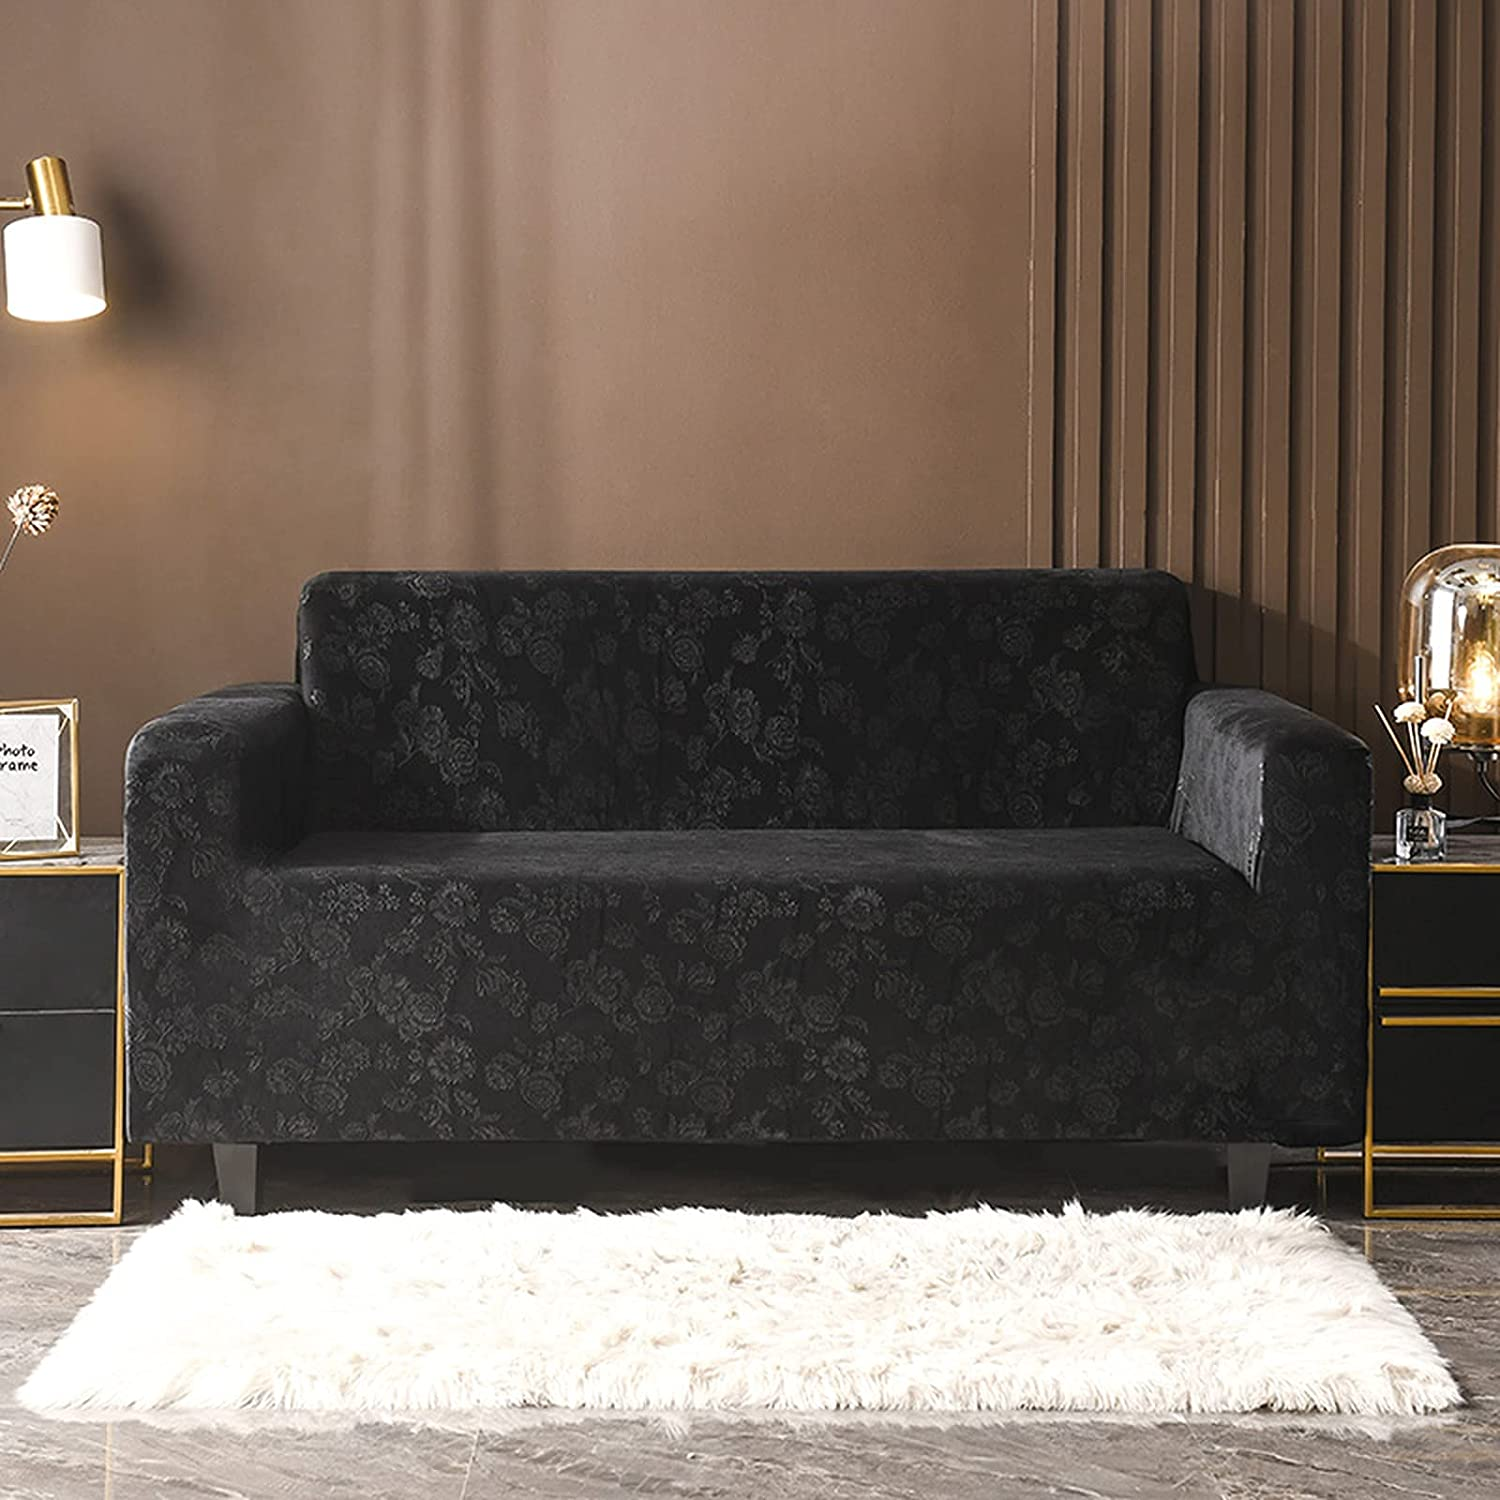 Floral Printed Ranking TOP8 Velvet Sofa Covers Slipcovers Living Protect Limited Special Price Room